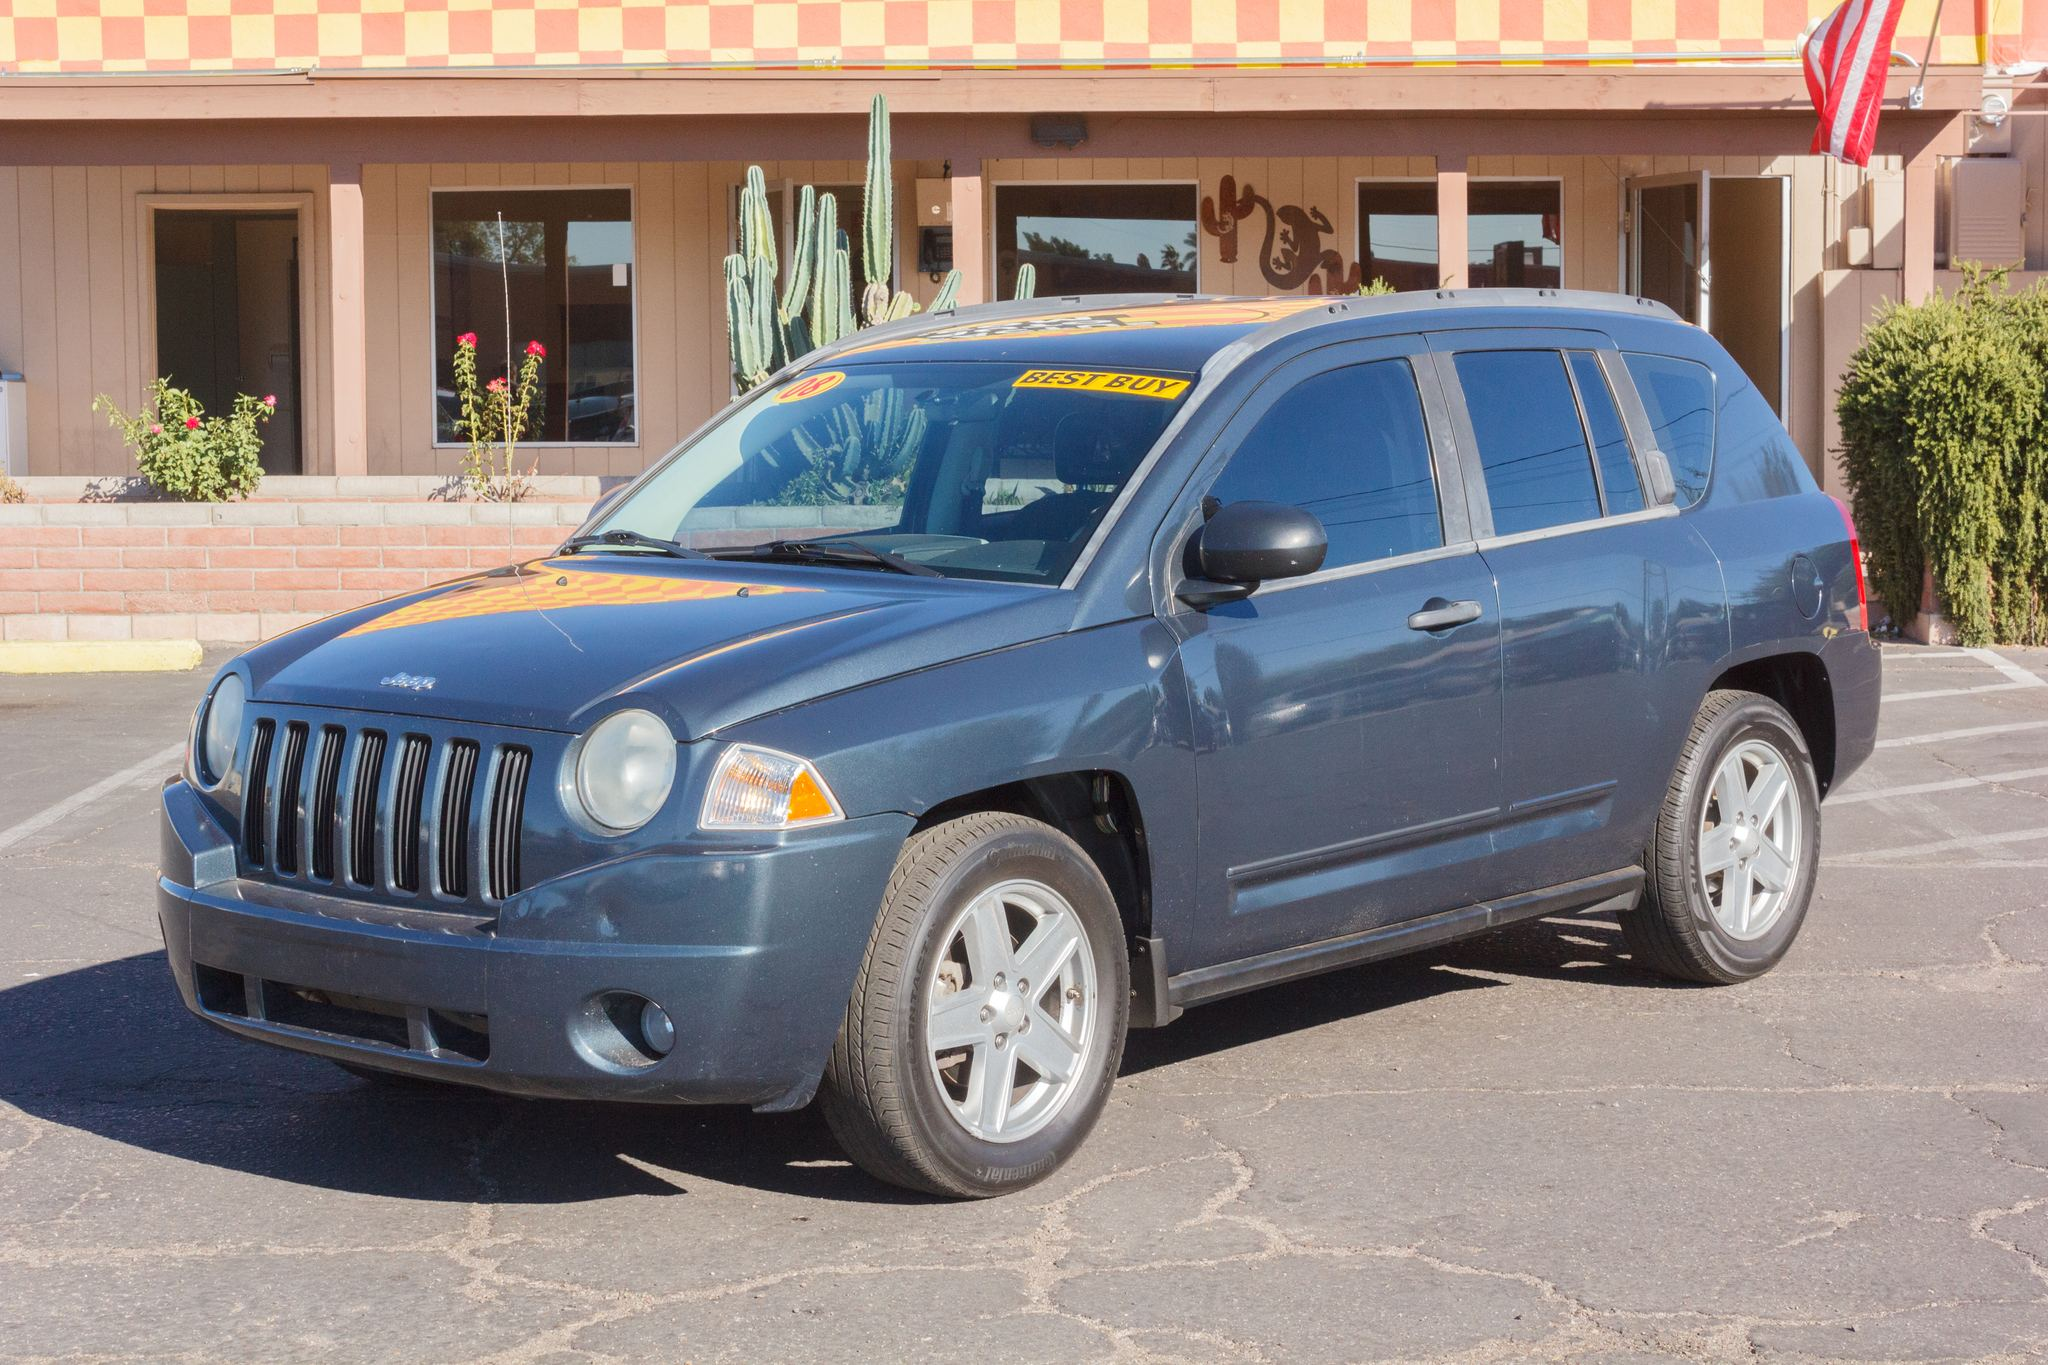 Photo of 2008 Jeep Compass 4WD 4d Wagon